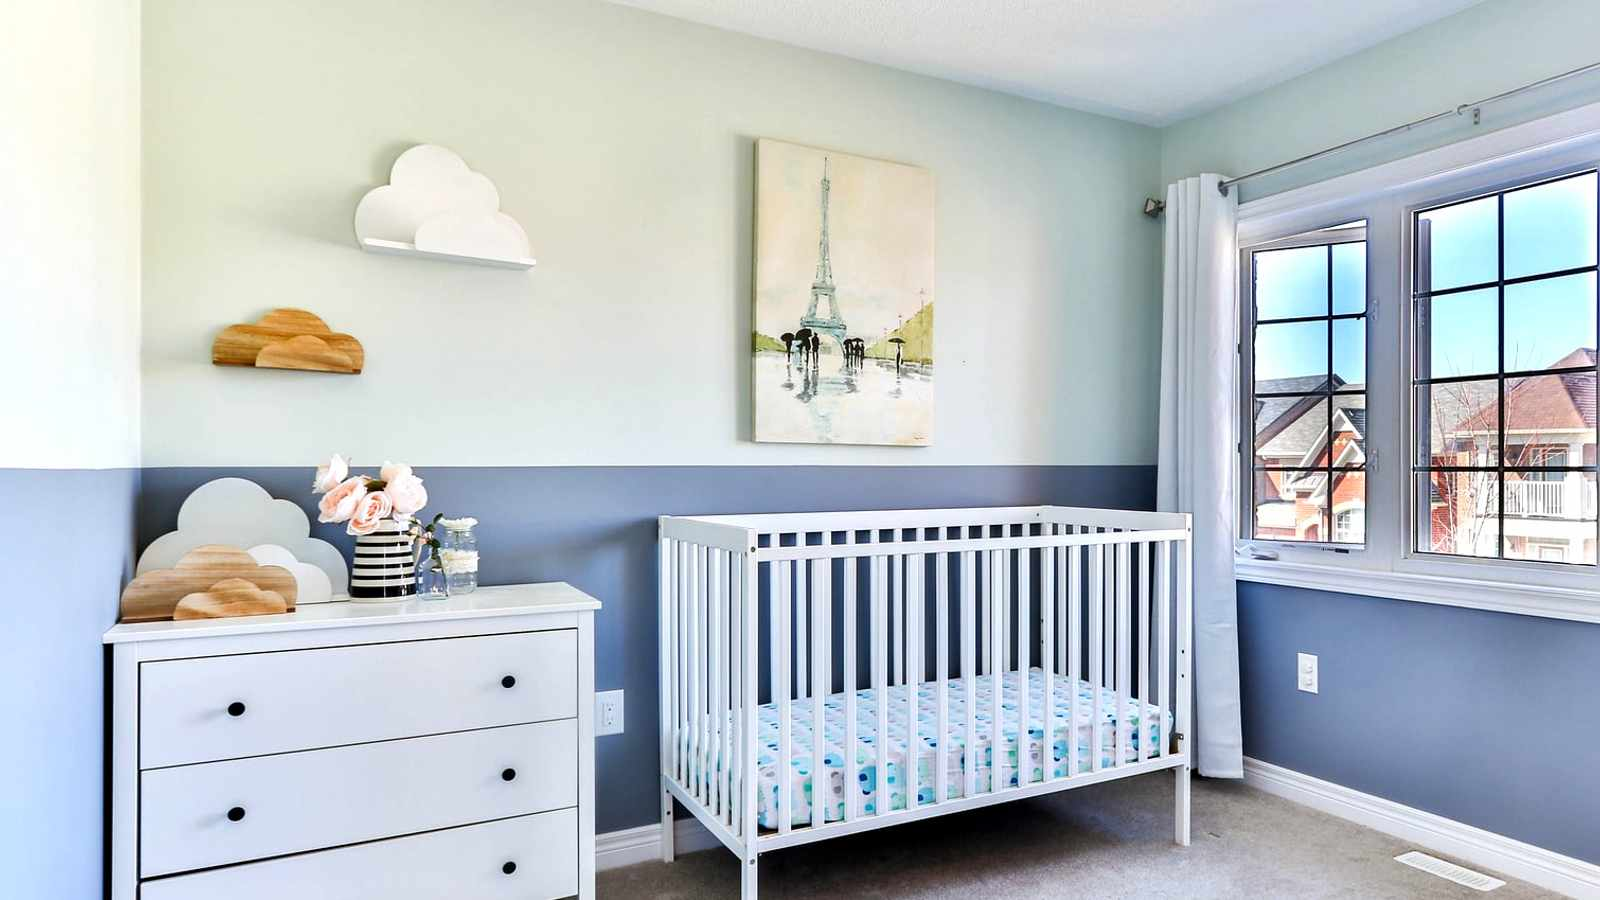 Want a safe nursery? Here are the latest recommendations.